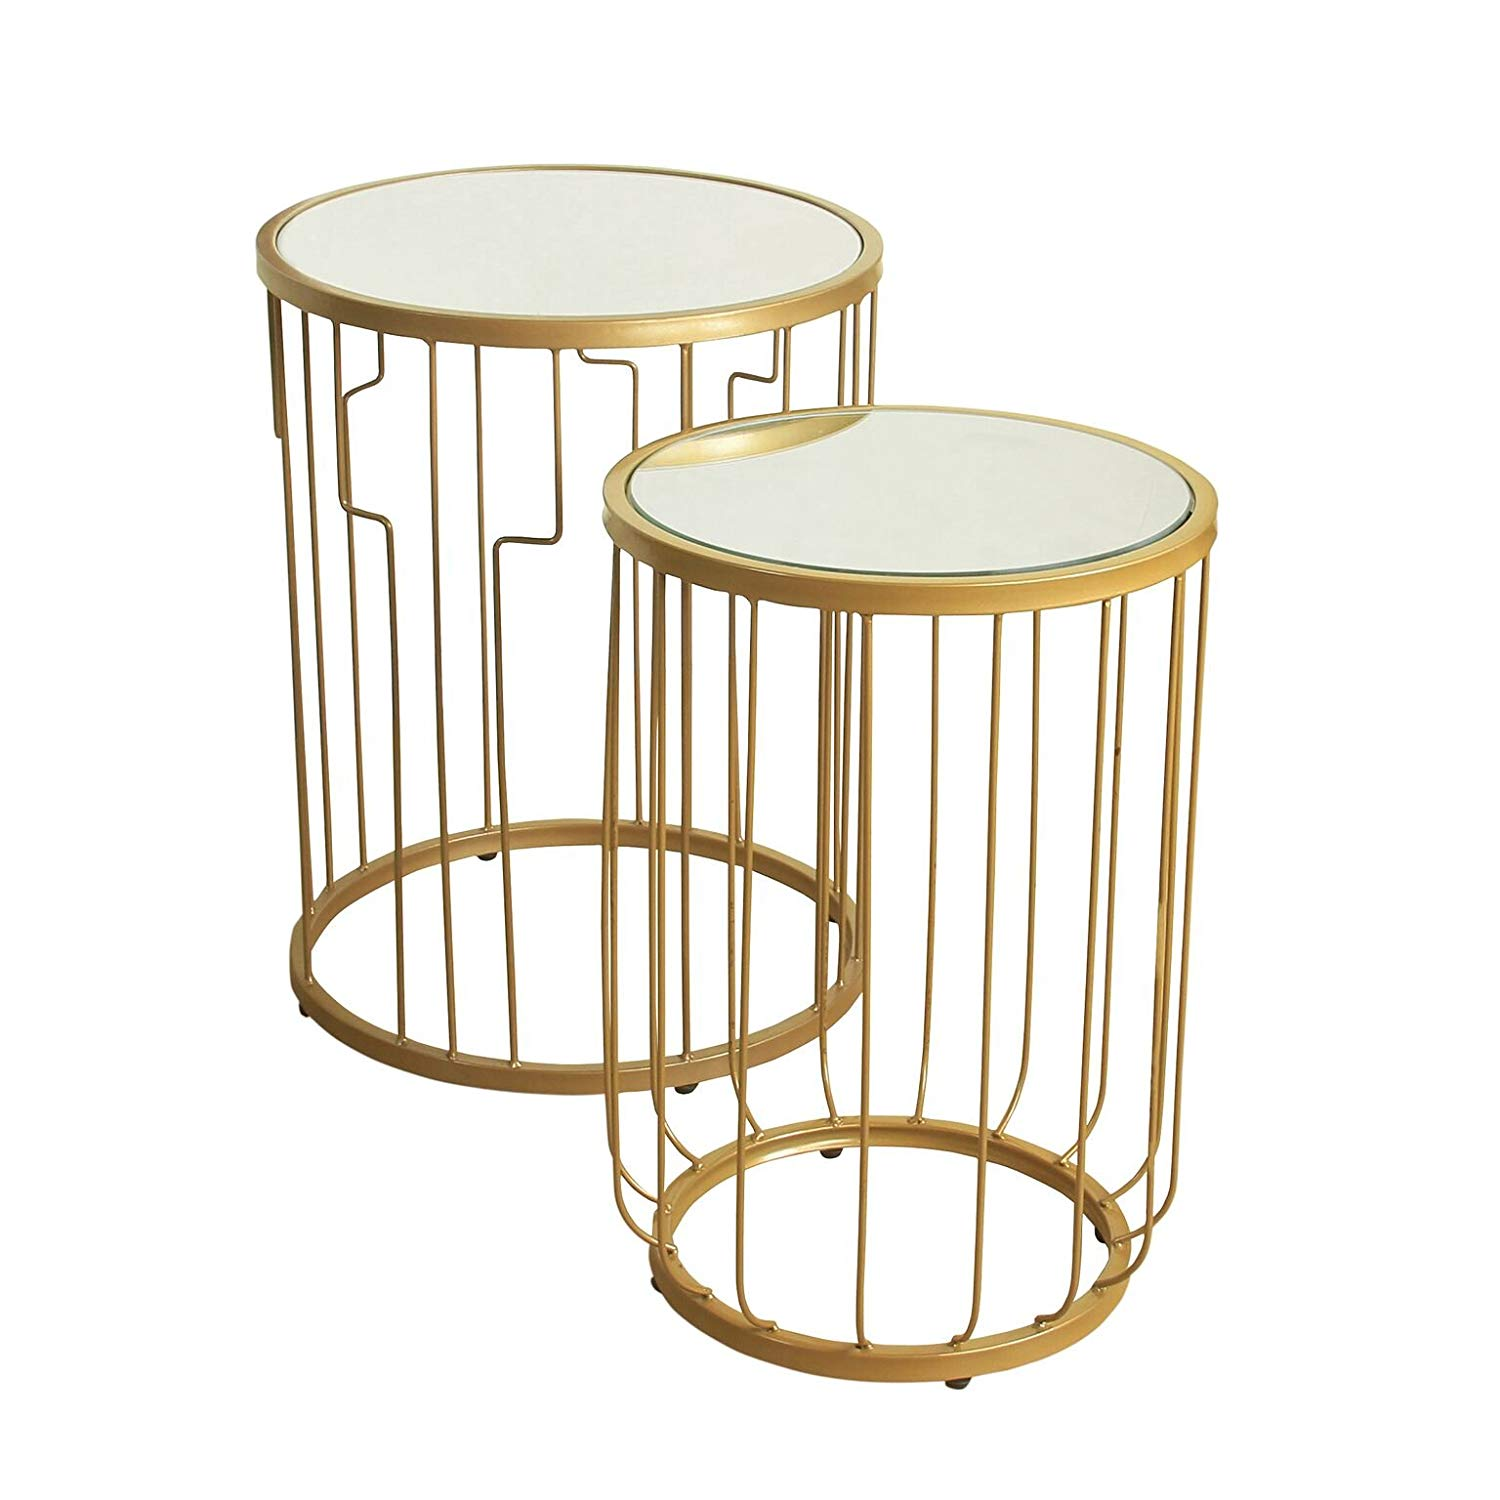 homepop metal accent nesting tables with glass gold table top set kitchen dining skinny wine rack base only counter high tier target round mirrored side end outdoor sectional